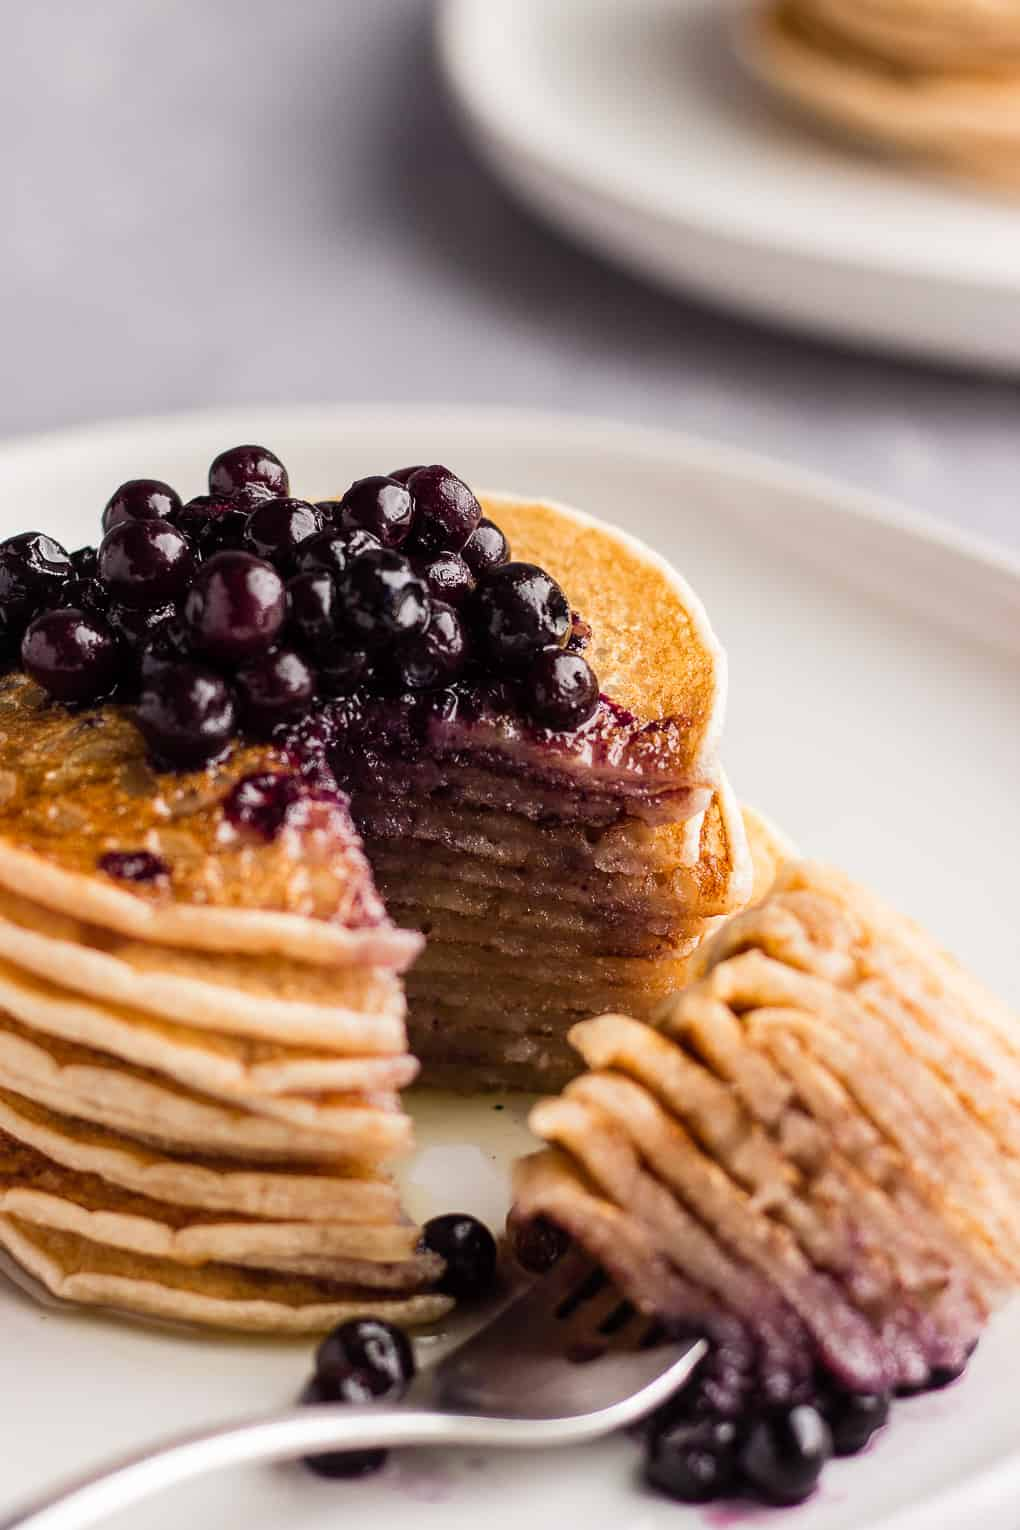 Slice of pancakes with blueberries